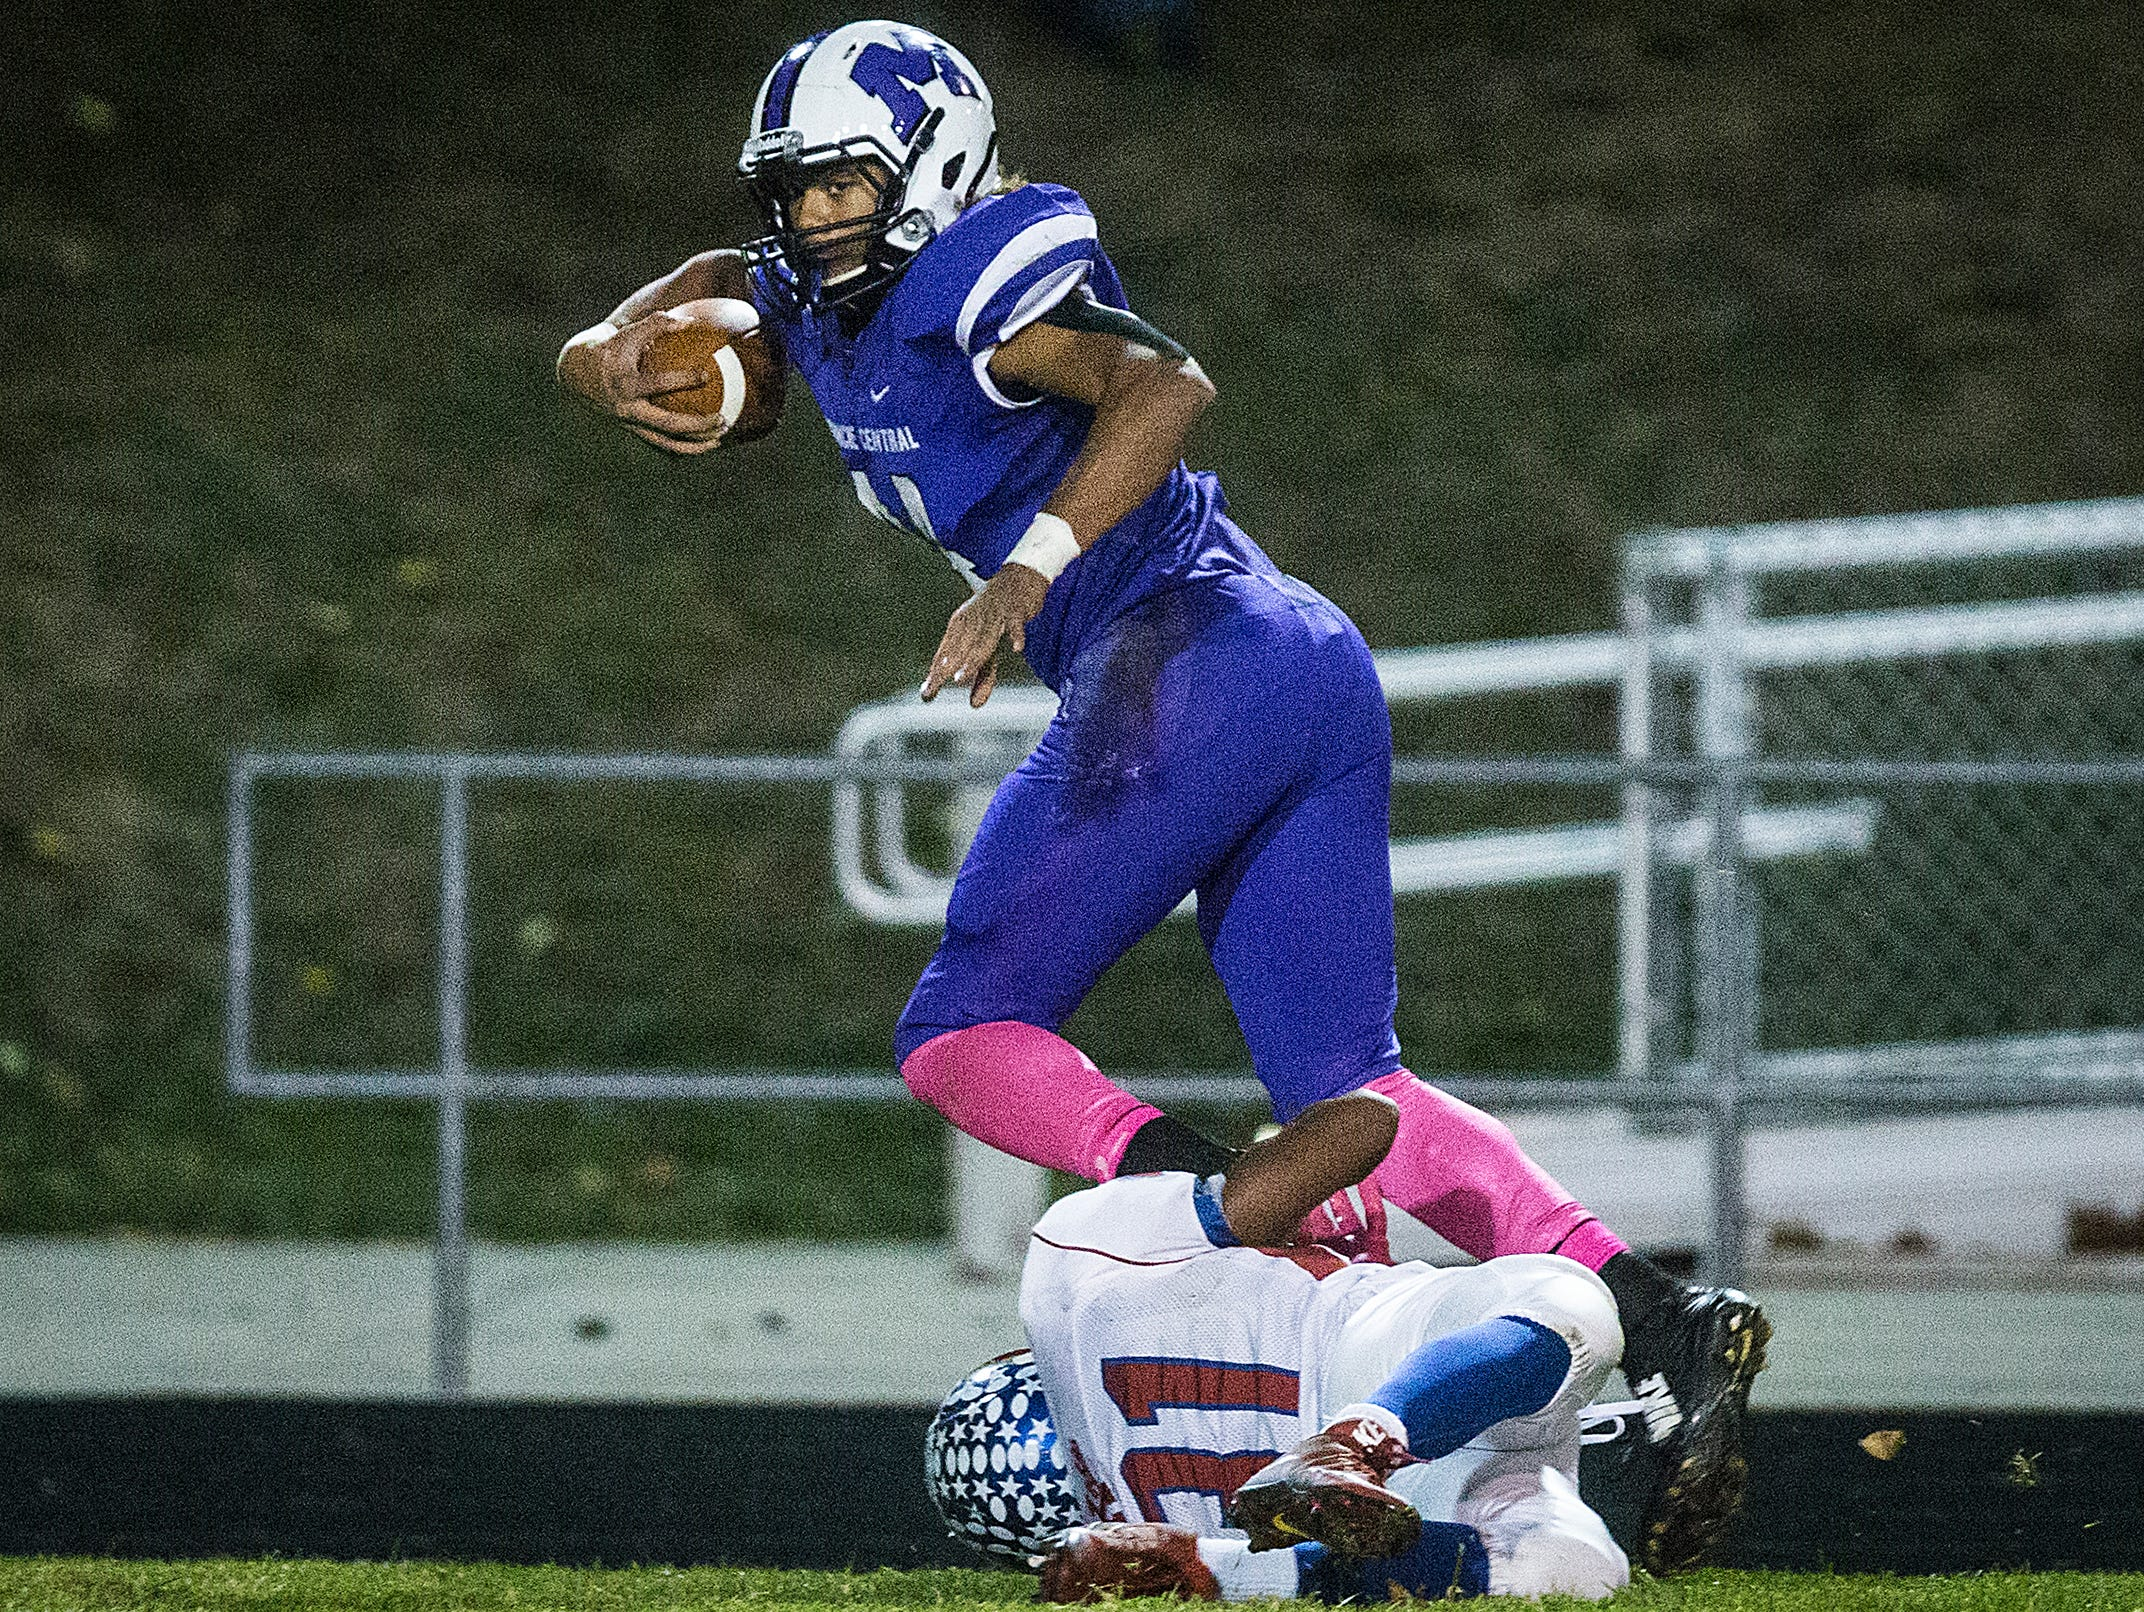 Central's Andre Wells fights past Kokomo's defense during their game at Central Friday, Oct. 30, 2015.